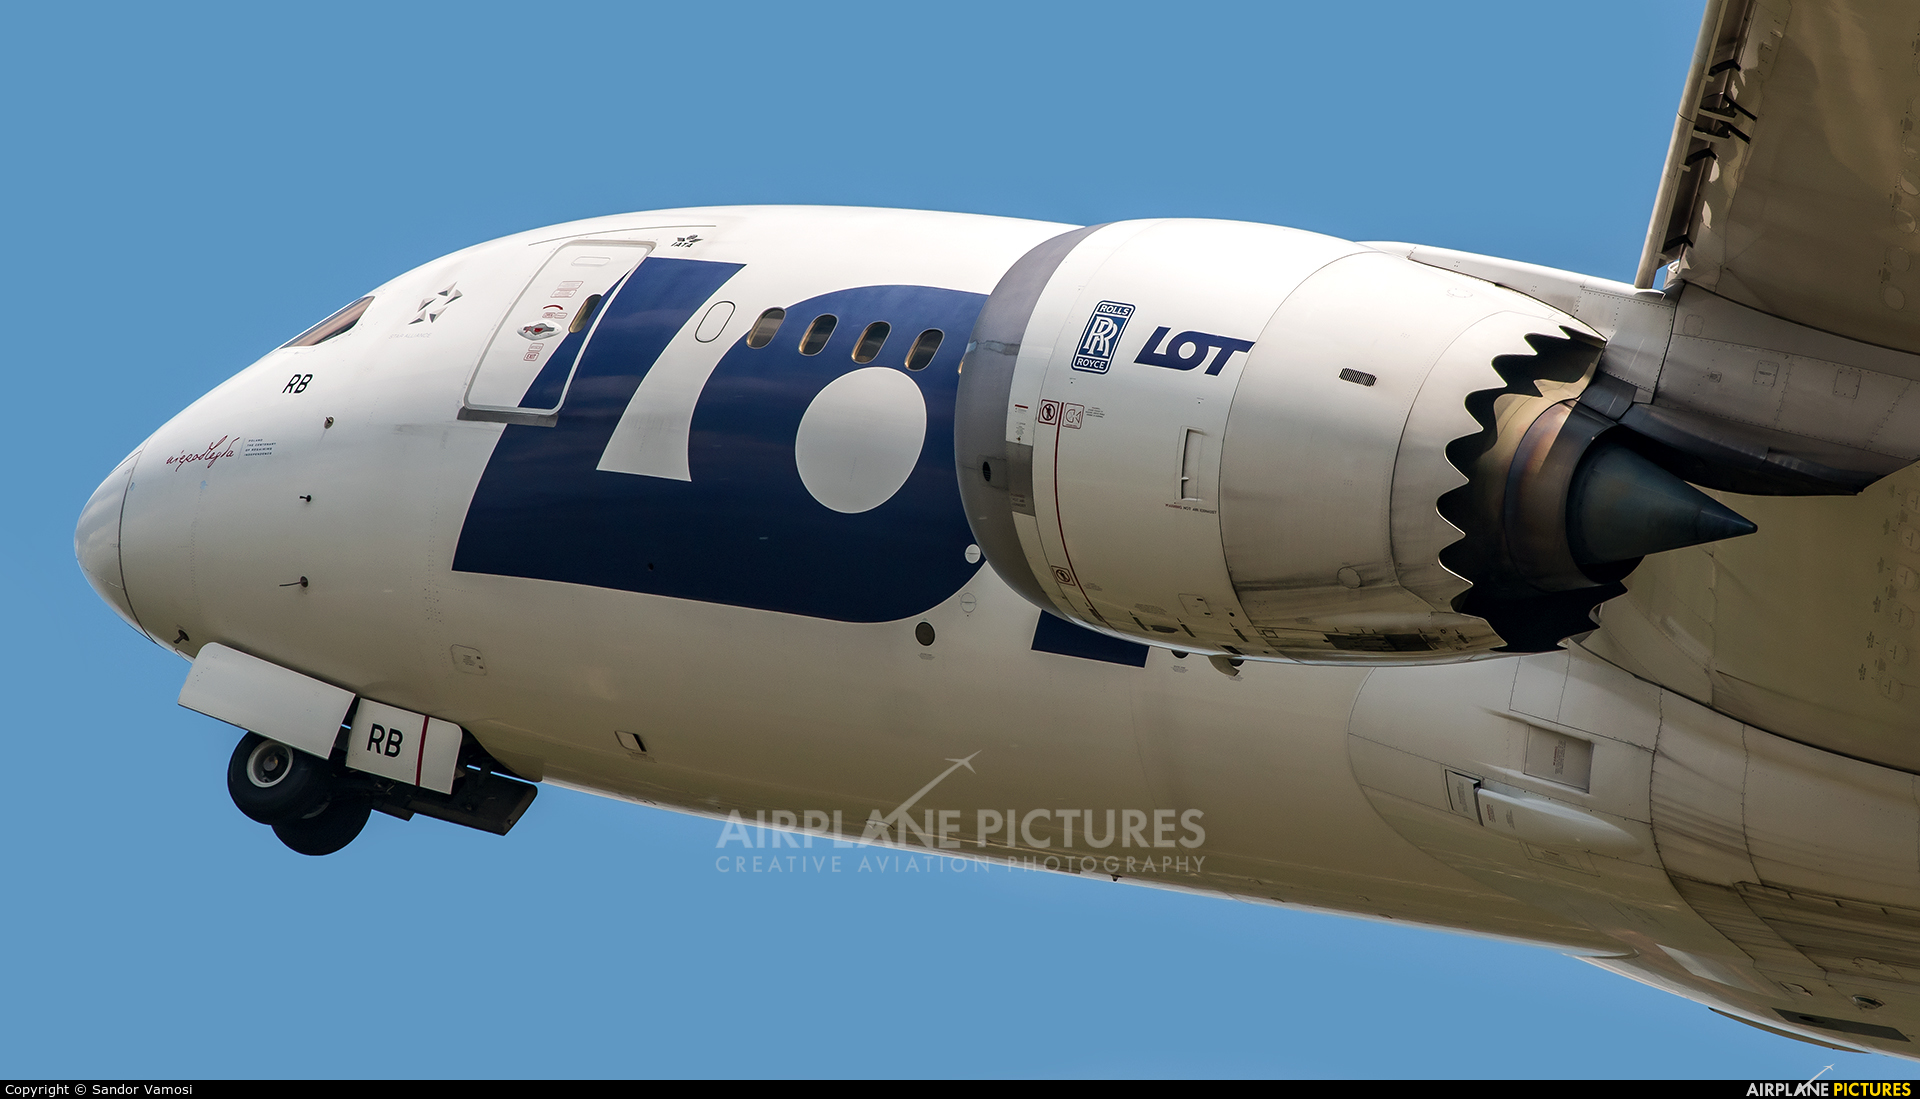 LOT - Polish Airlines SP-LRB aircraft at Budapest Ferenc Liszt International Airport